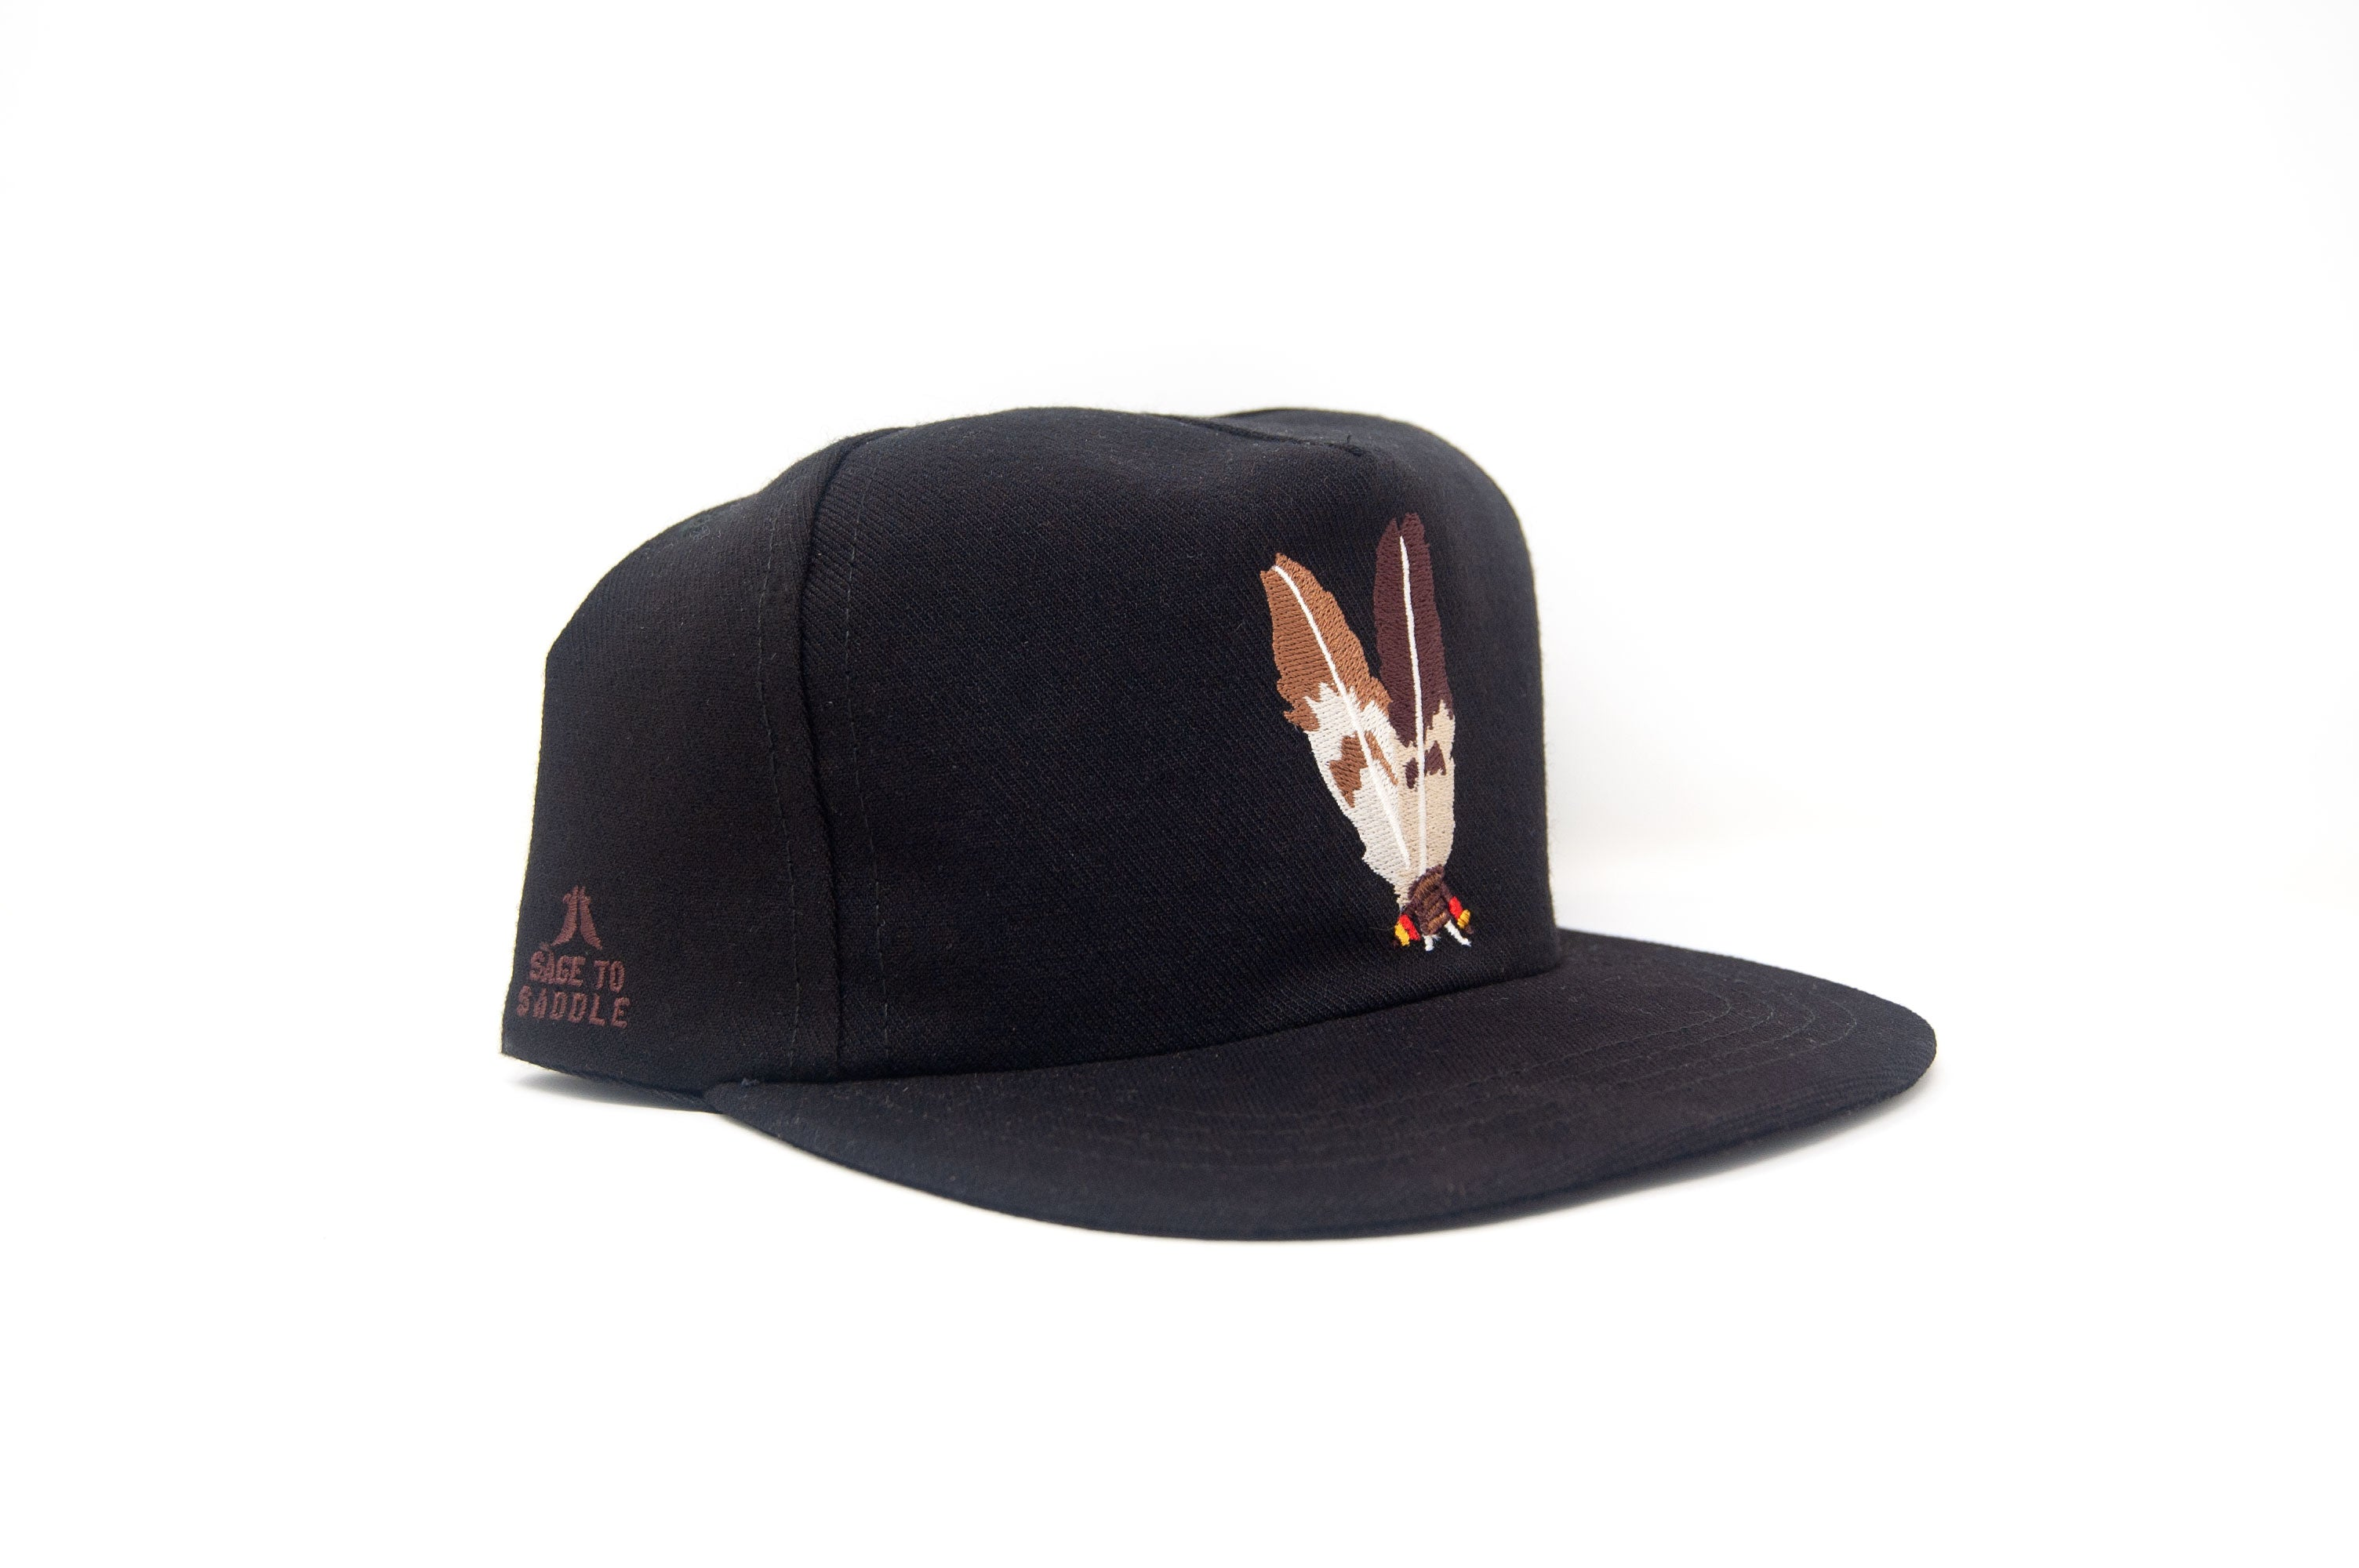 "Ampal x Sage to Saddle ""TWO FEATHERS""  Strapback"